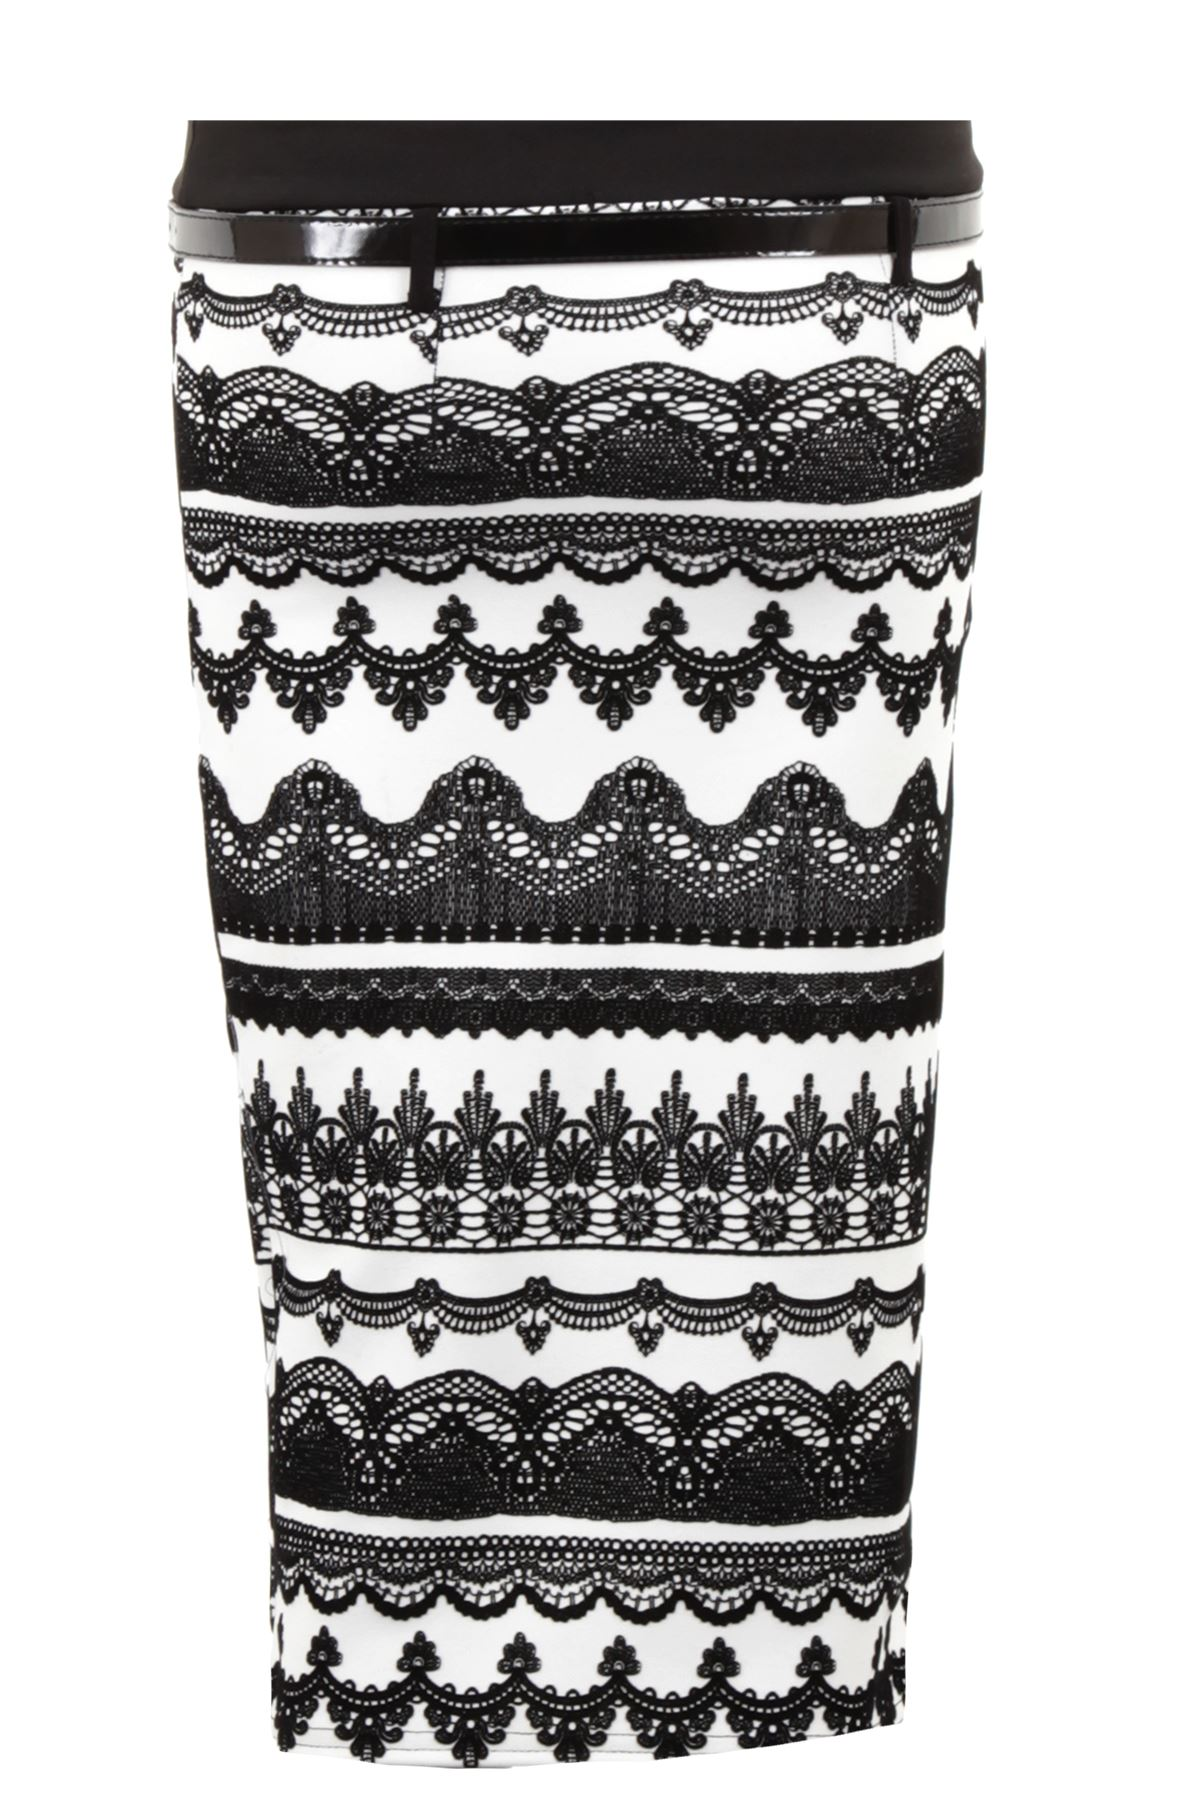 Ladies Flock Aztec Print Belted Pleated Black White Pencil Formal Women/'s Skirt